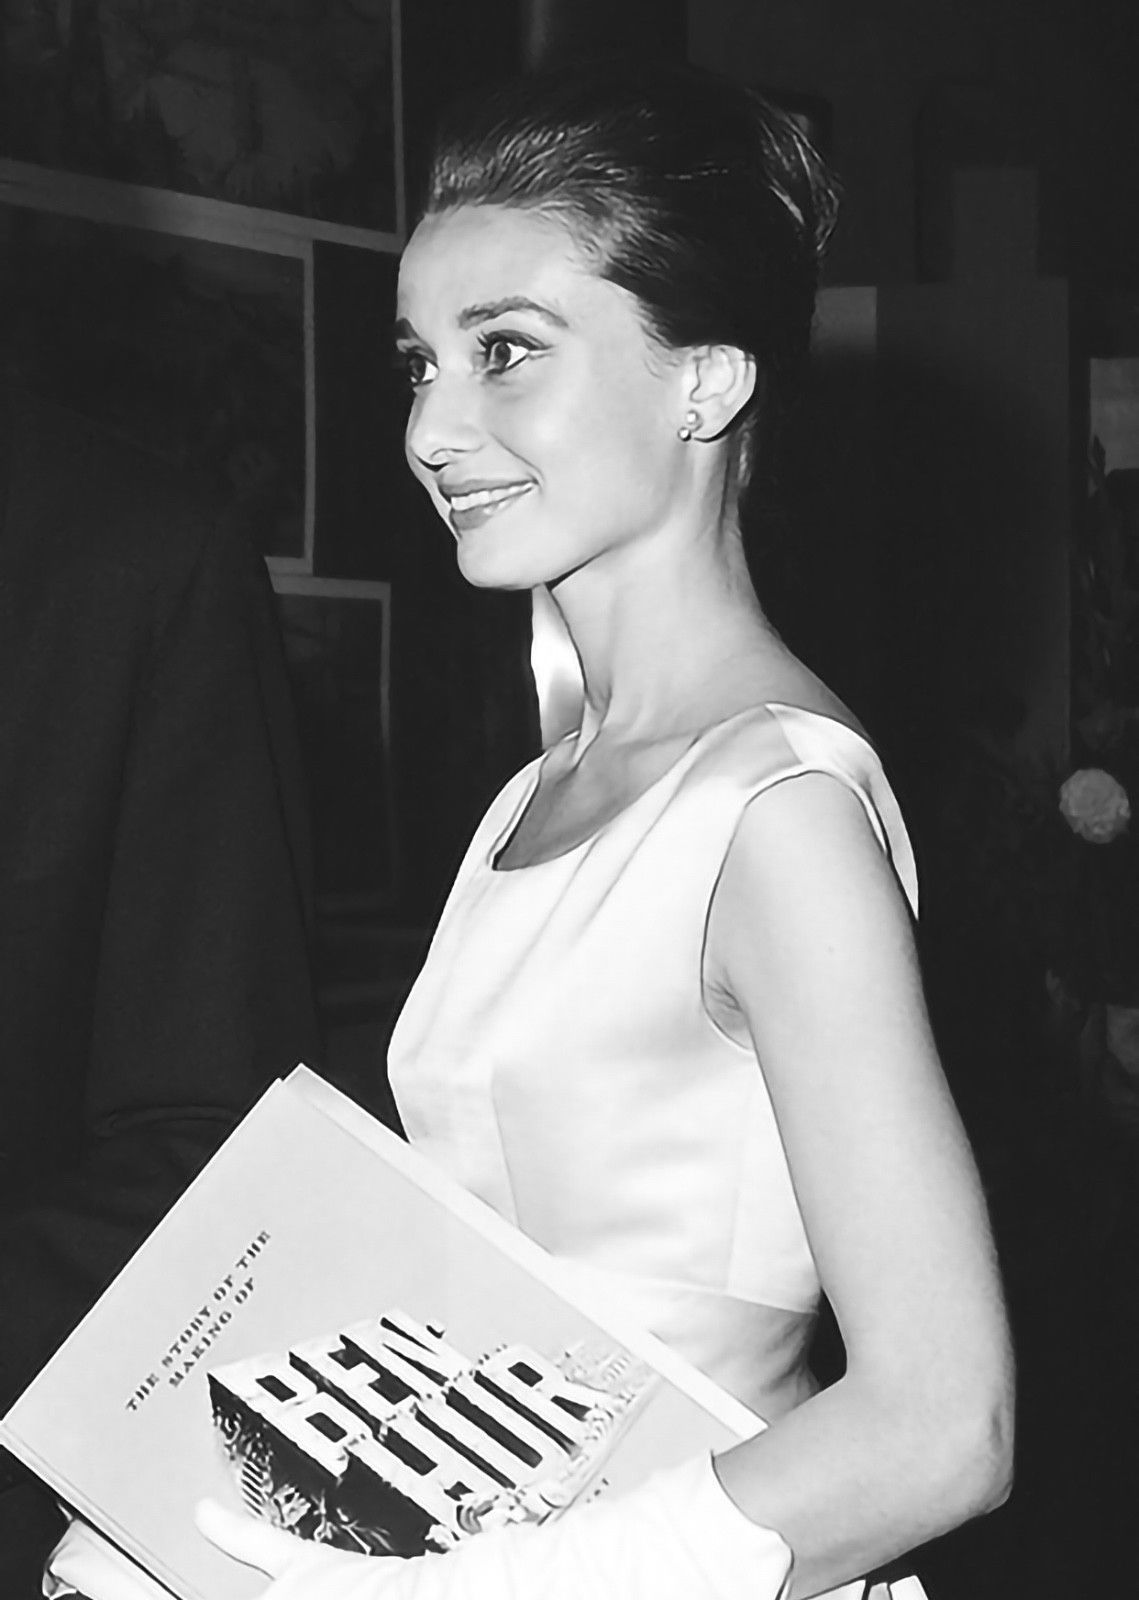 71b60152a11 Heaven is in your eyes | Beauty & Inspiration | Audrey hepburn ...